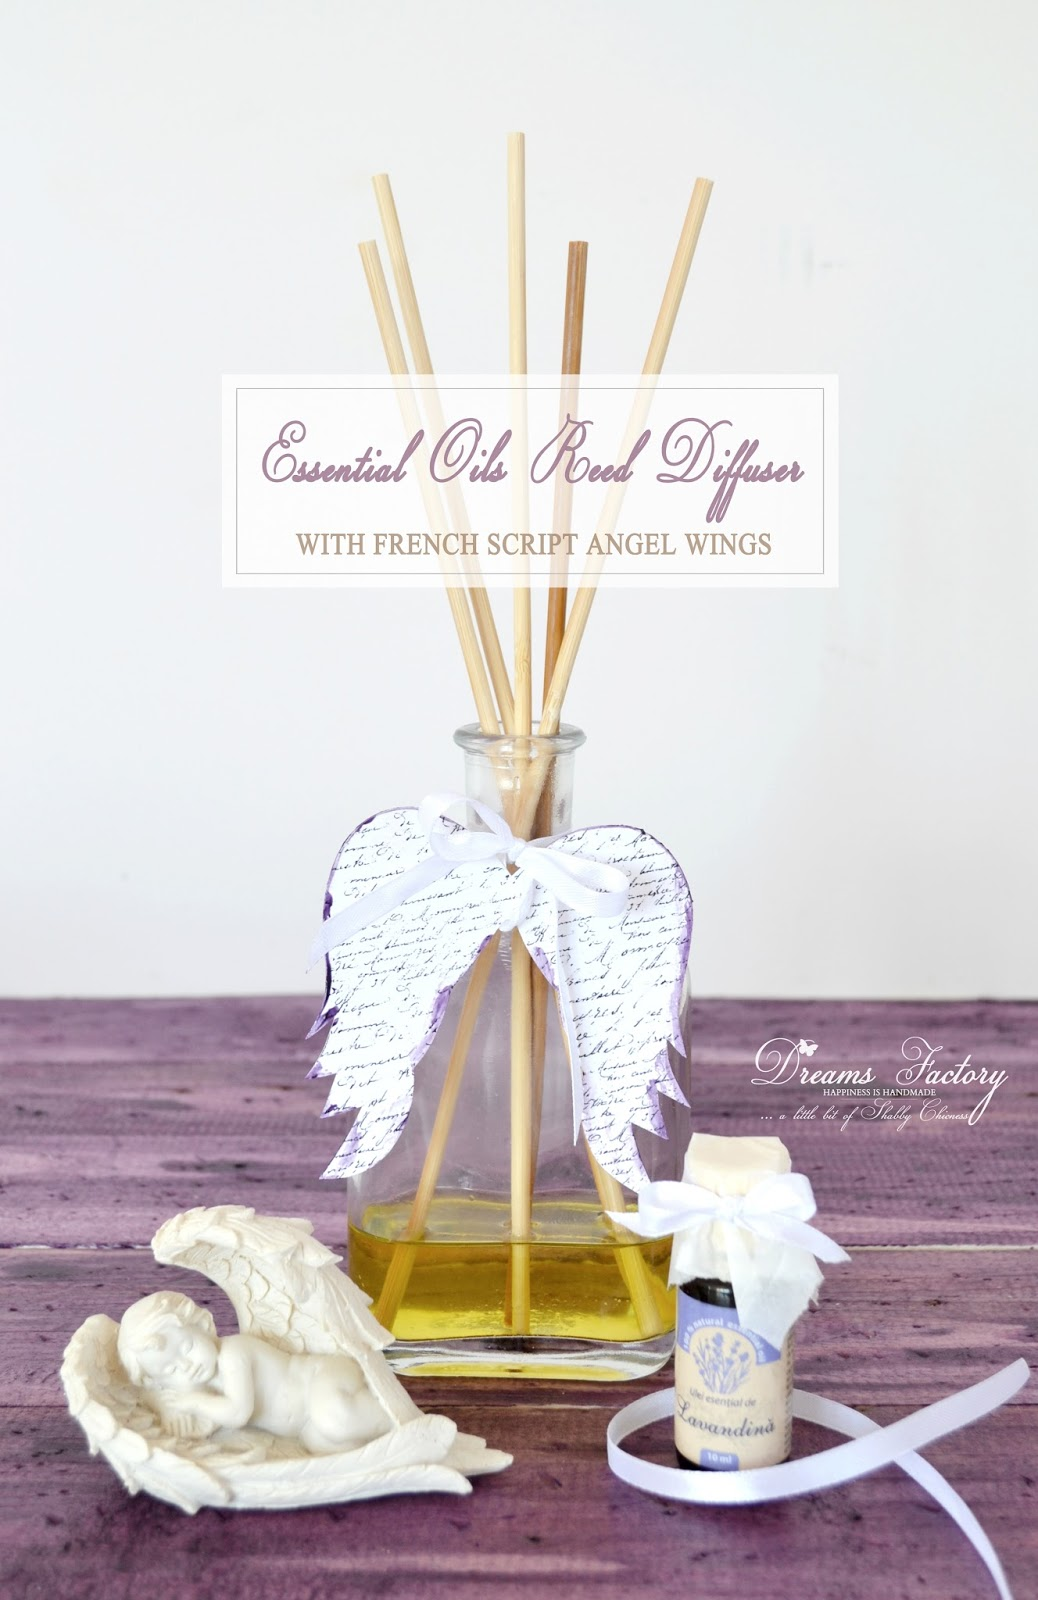 DIY Essential Oils Reed Diffuser with French Script Angel Wings / Tutorial: Parfumant de camera cu uleiuri esentiale  & aripi de inger frantuzesti